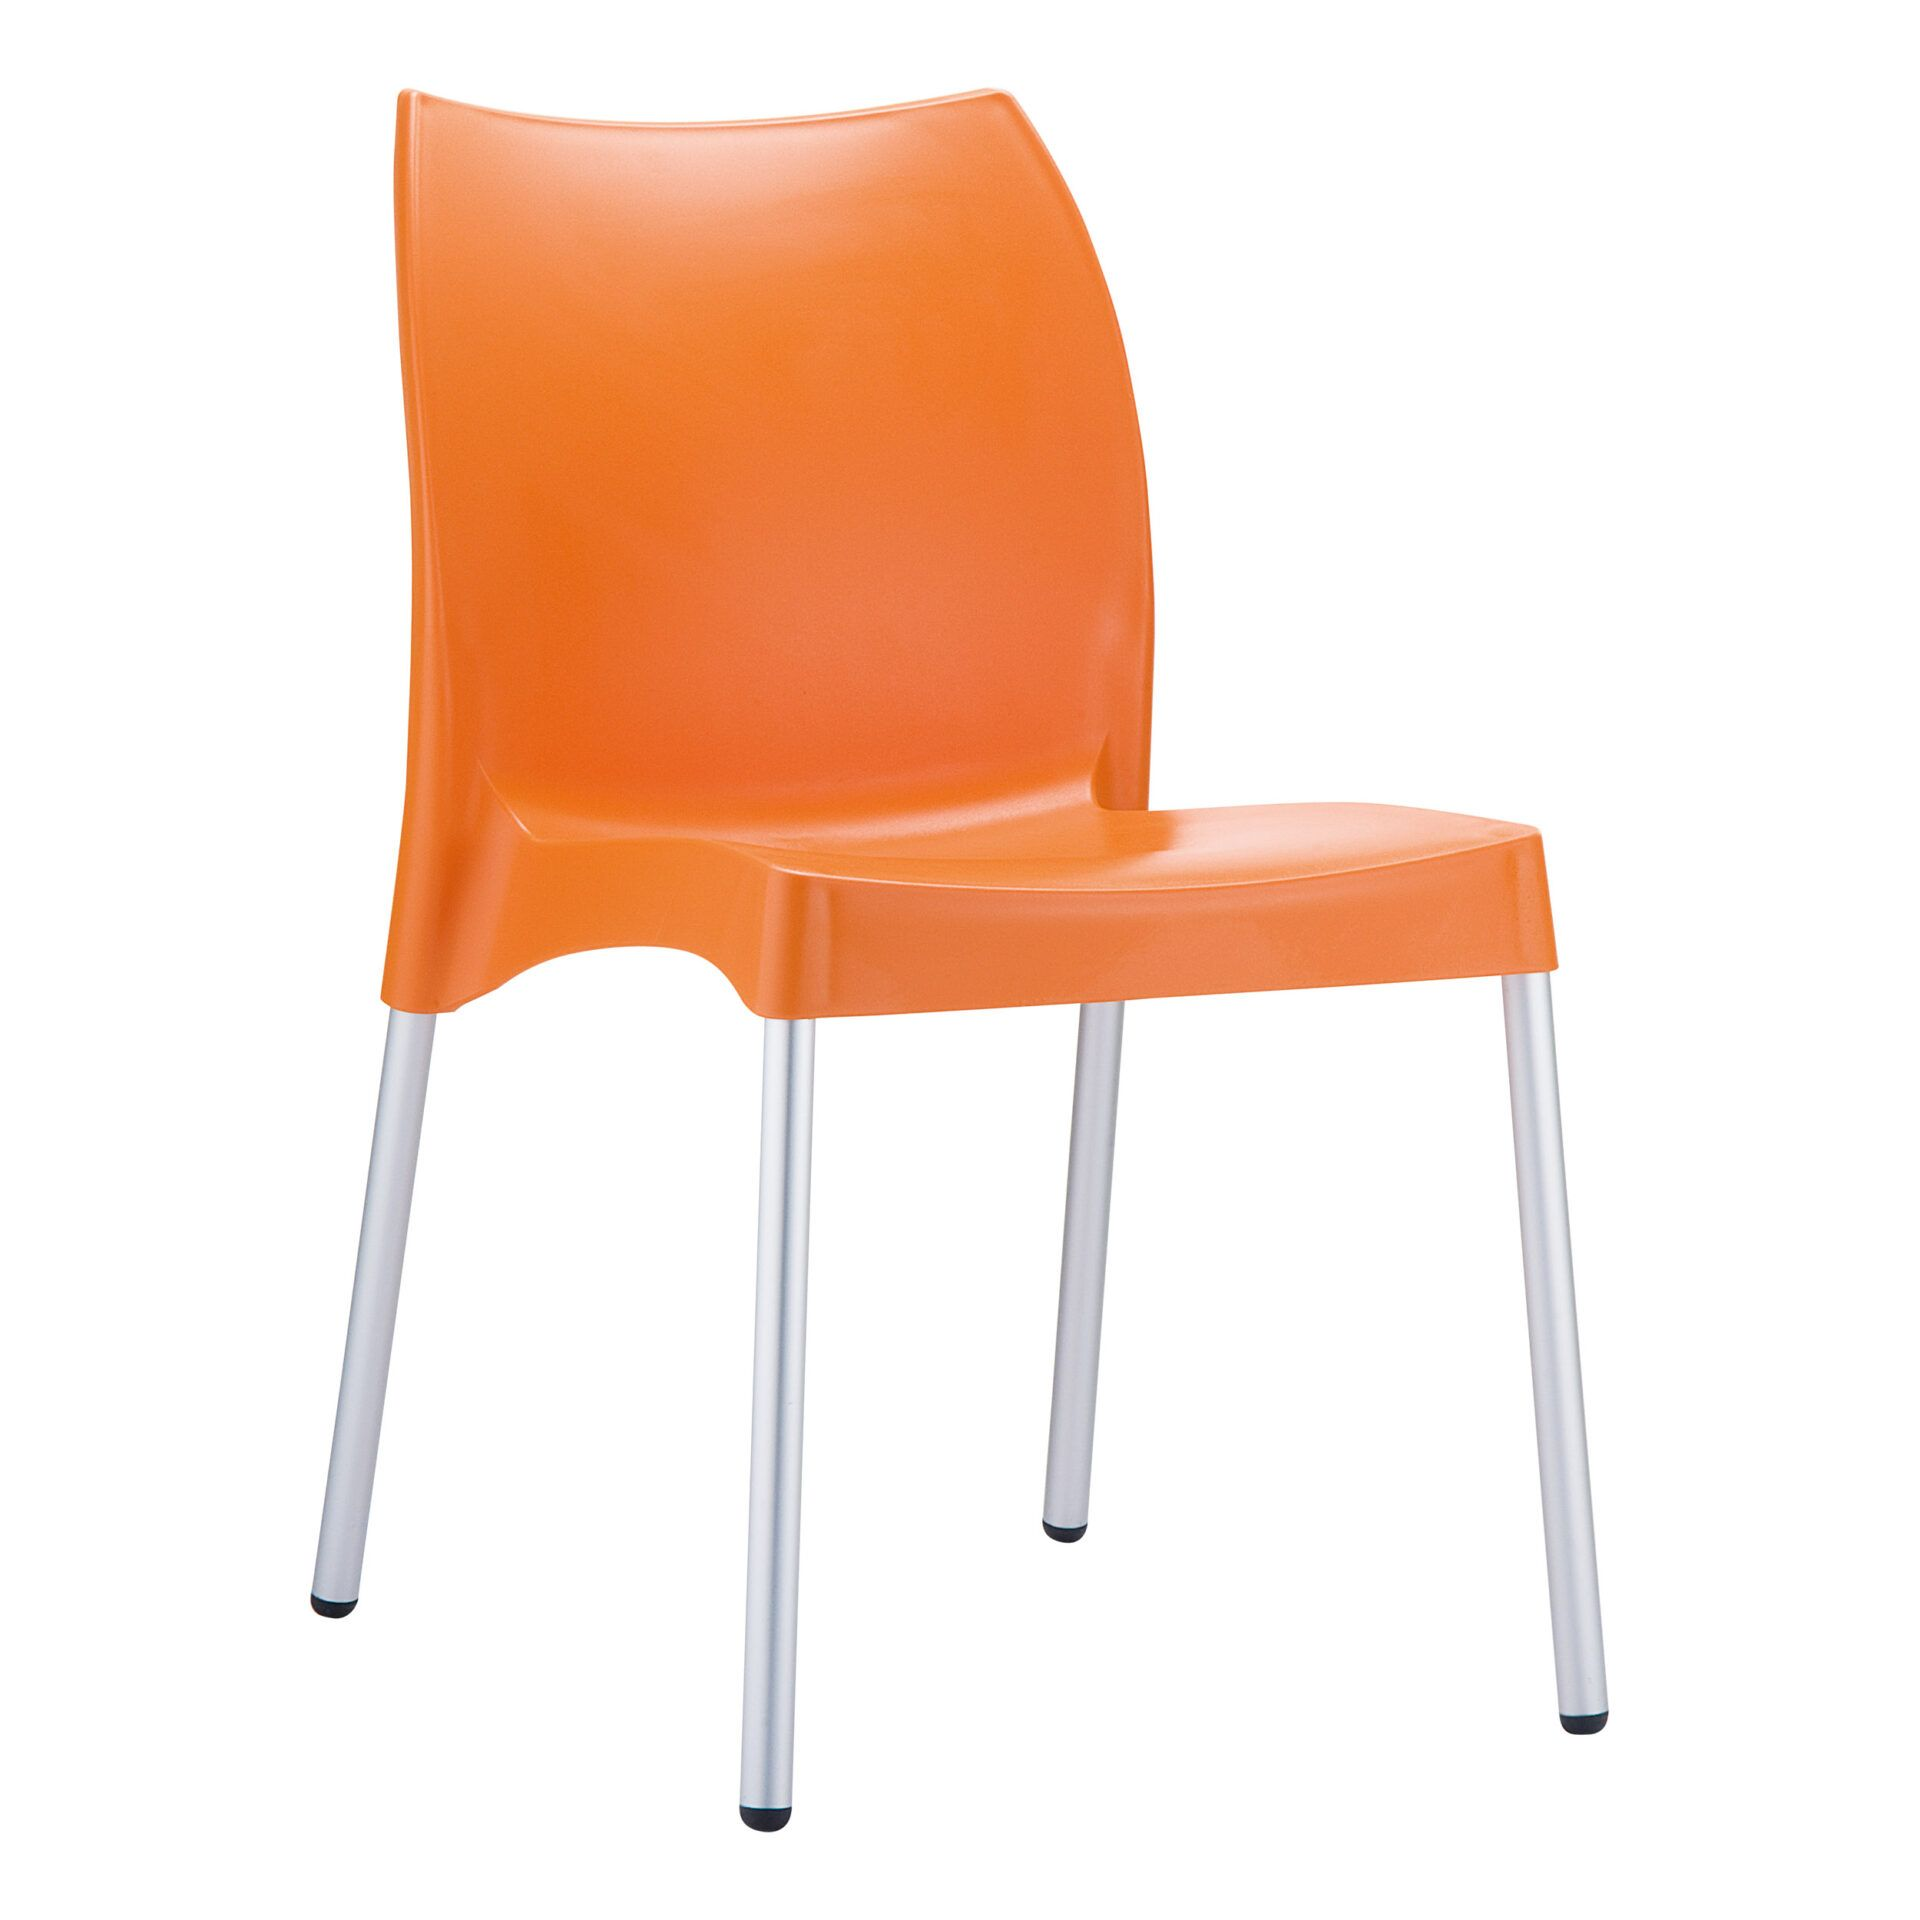 commercial outdoor hospitality seating vita chair orange front side